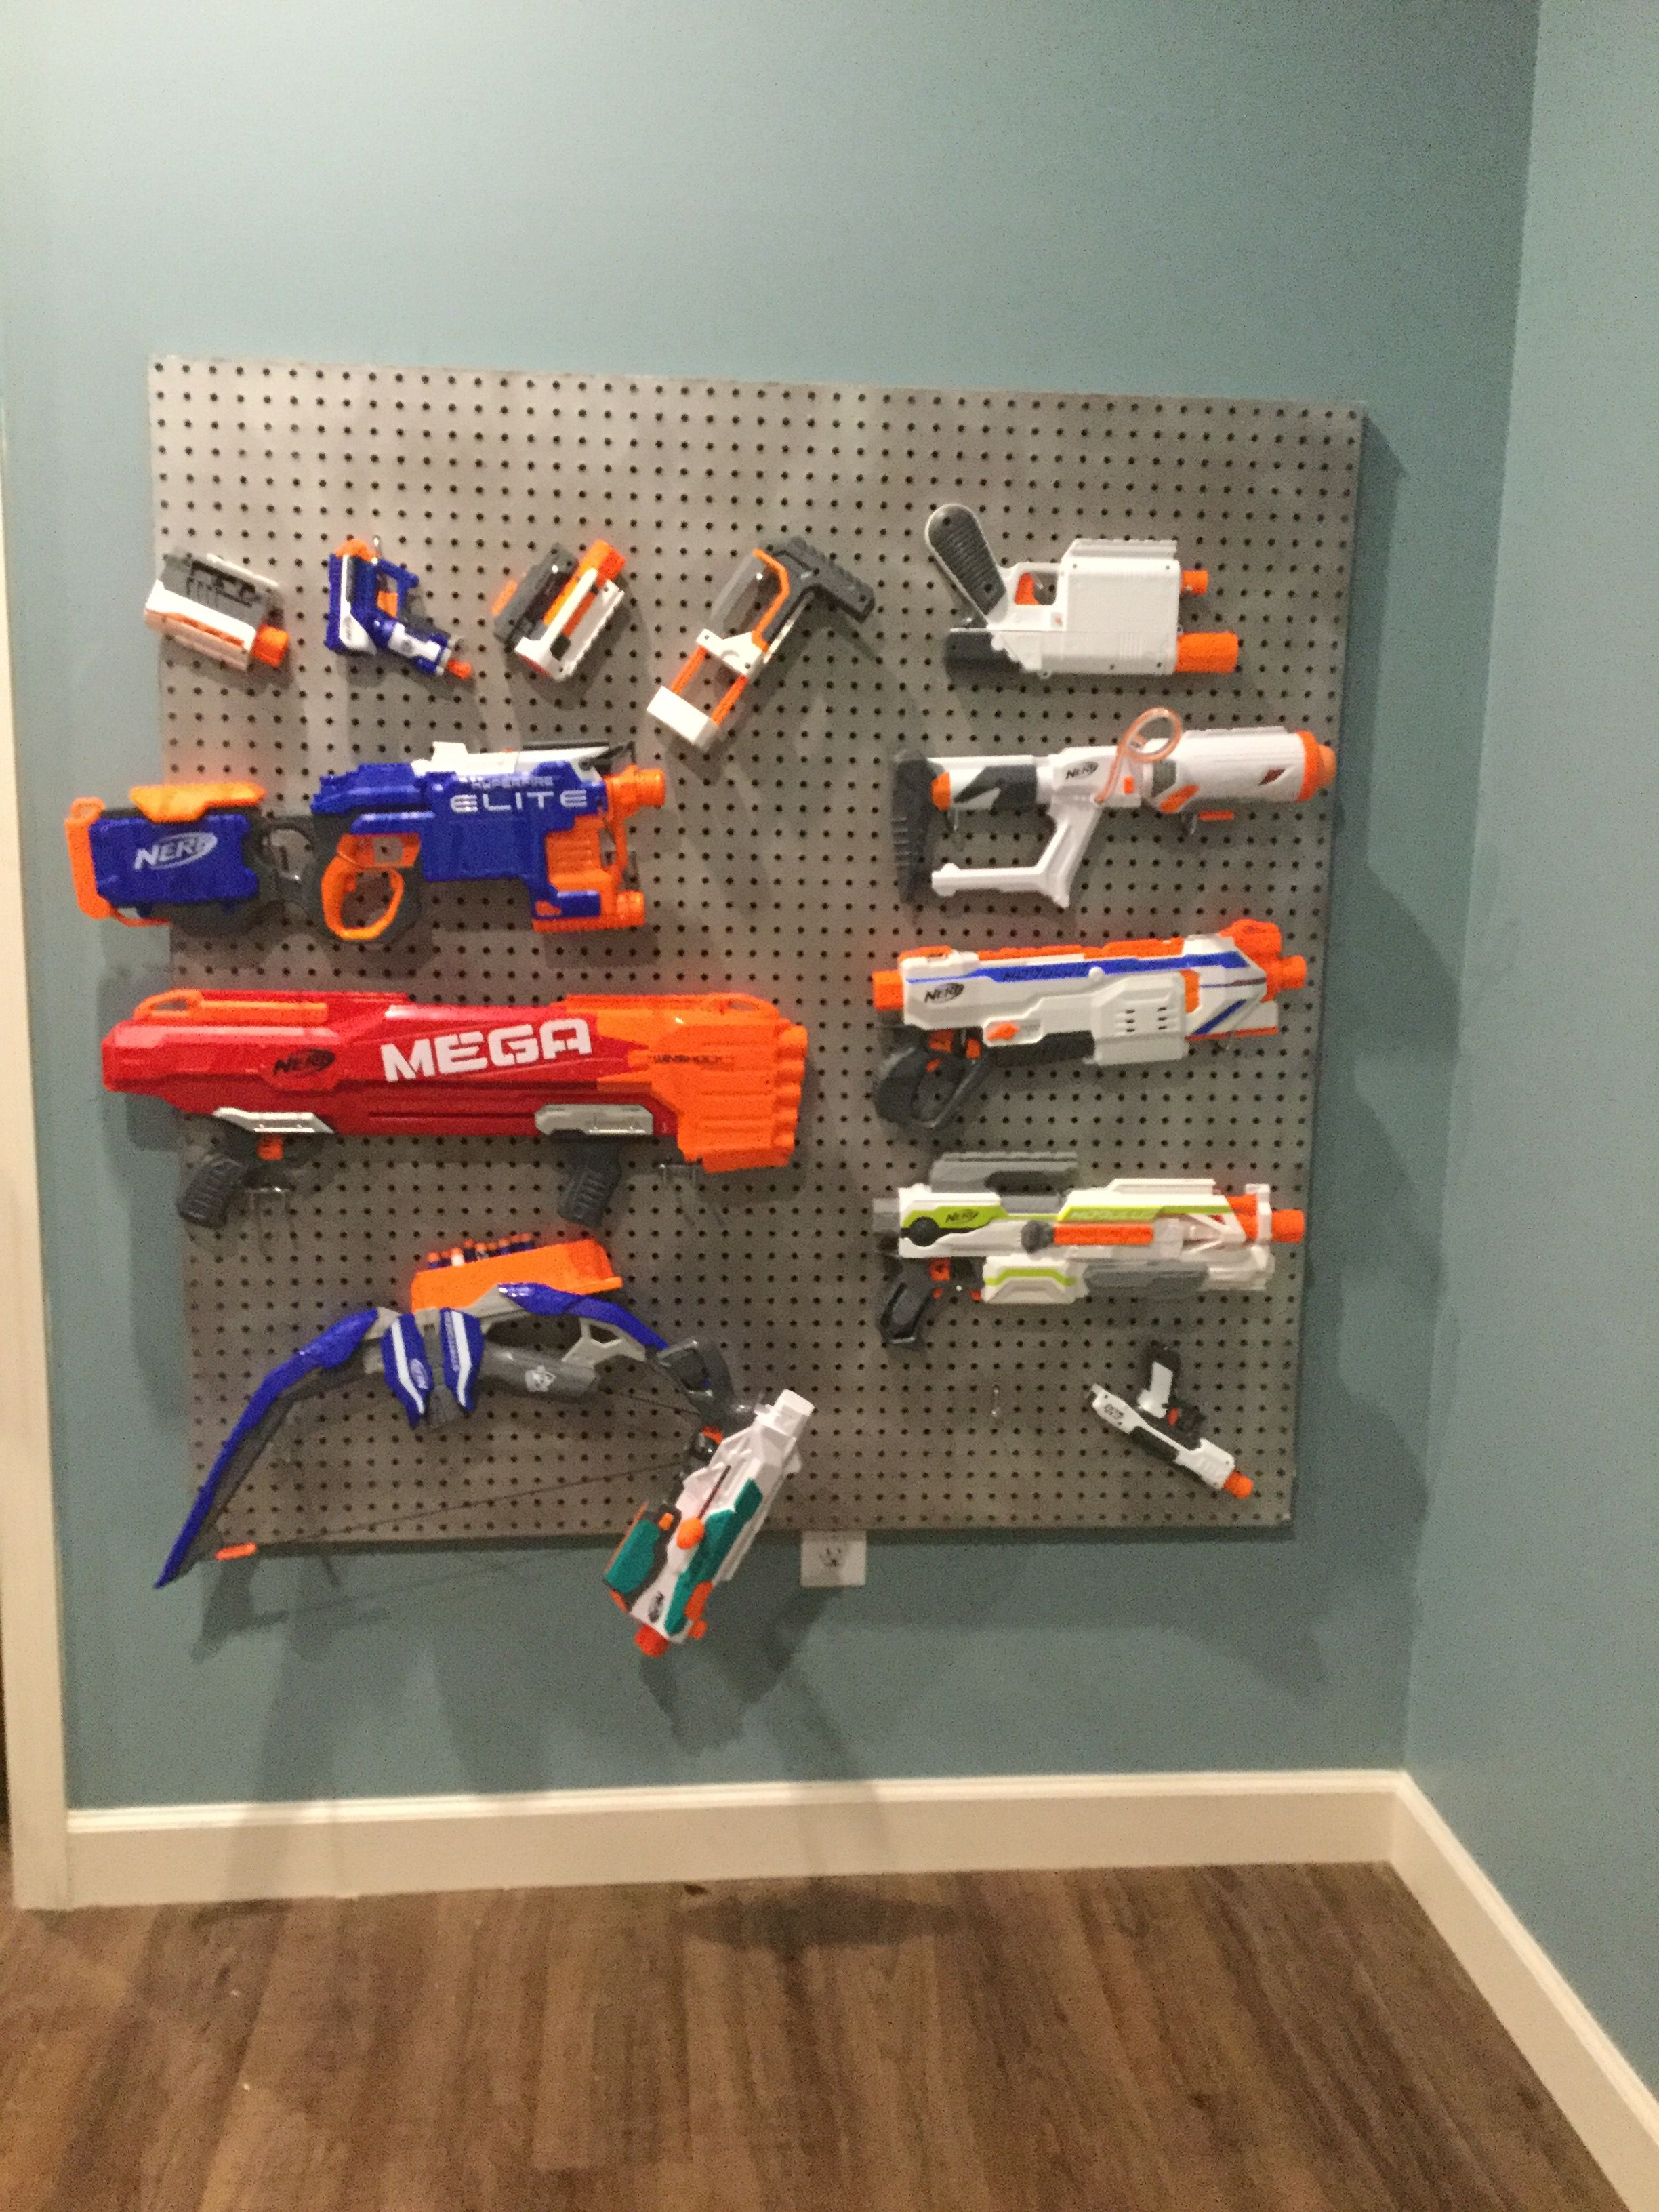 Nerf Gun Peg Board In Our New Playroom Spray Painted A Peg Board